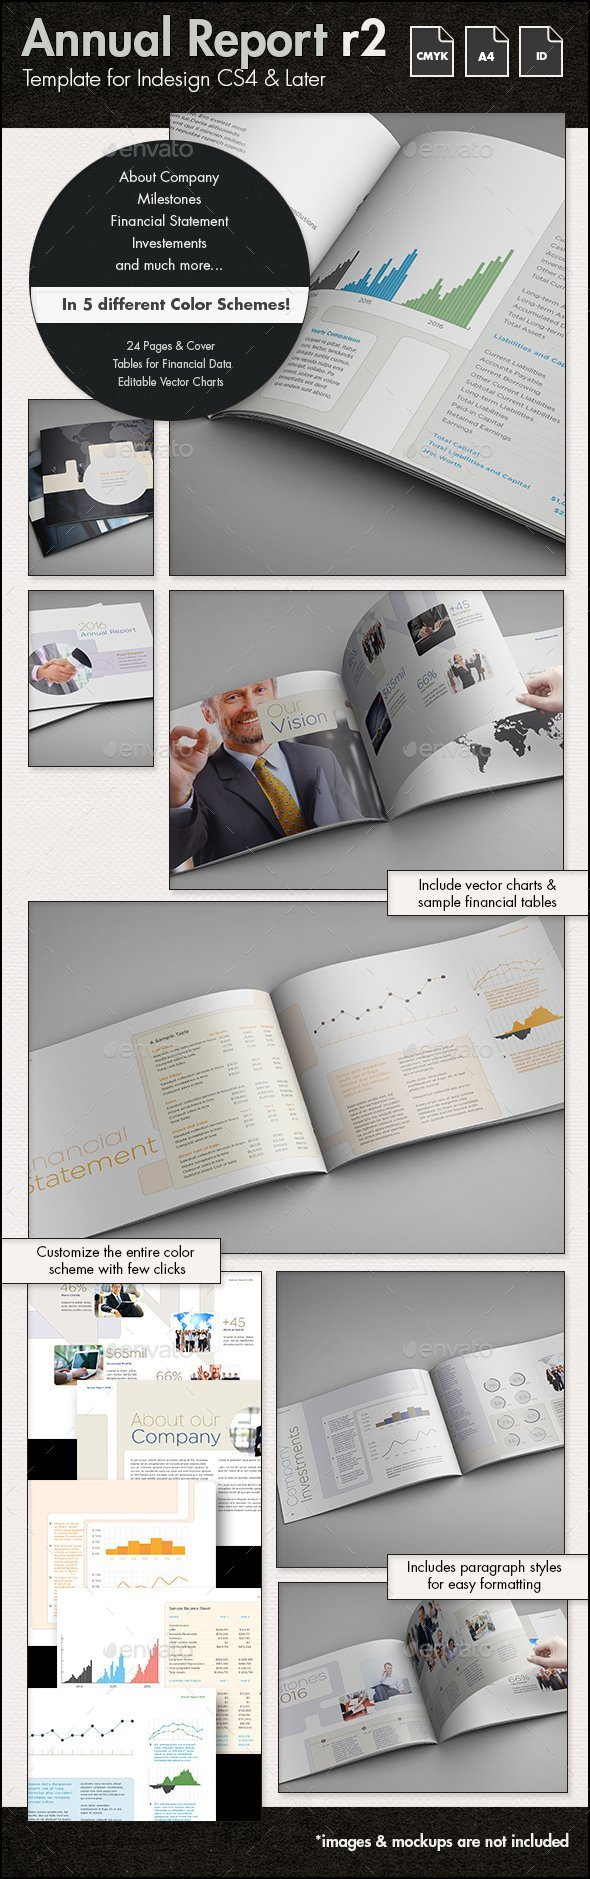 Annual Report Template r2 - A4 Landscape - Corporate Brochures